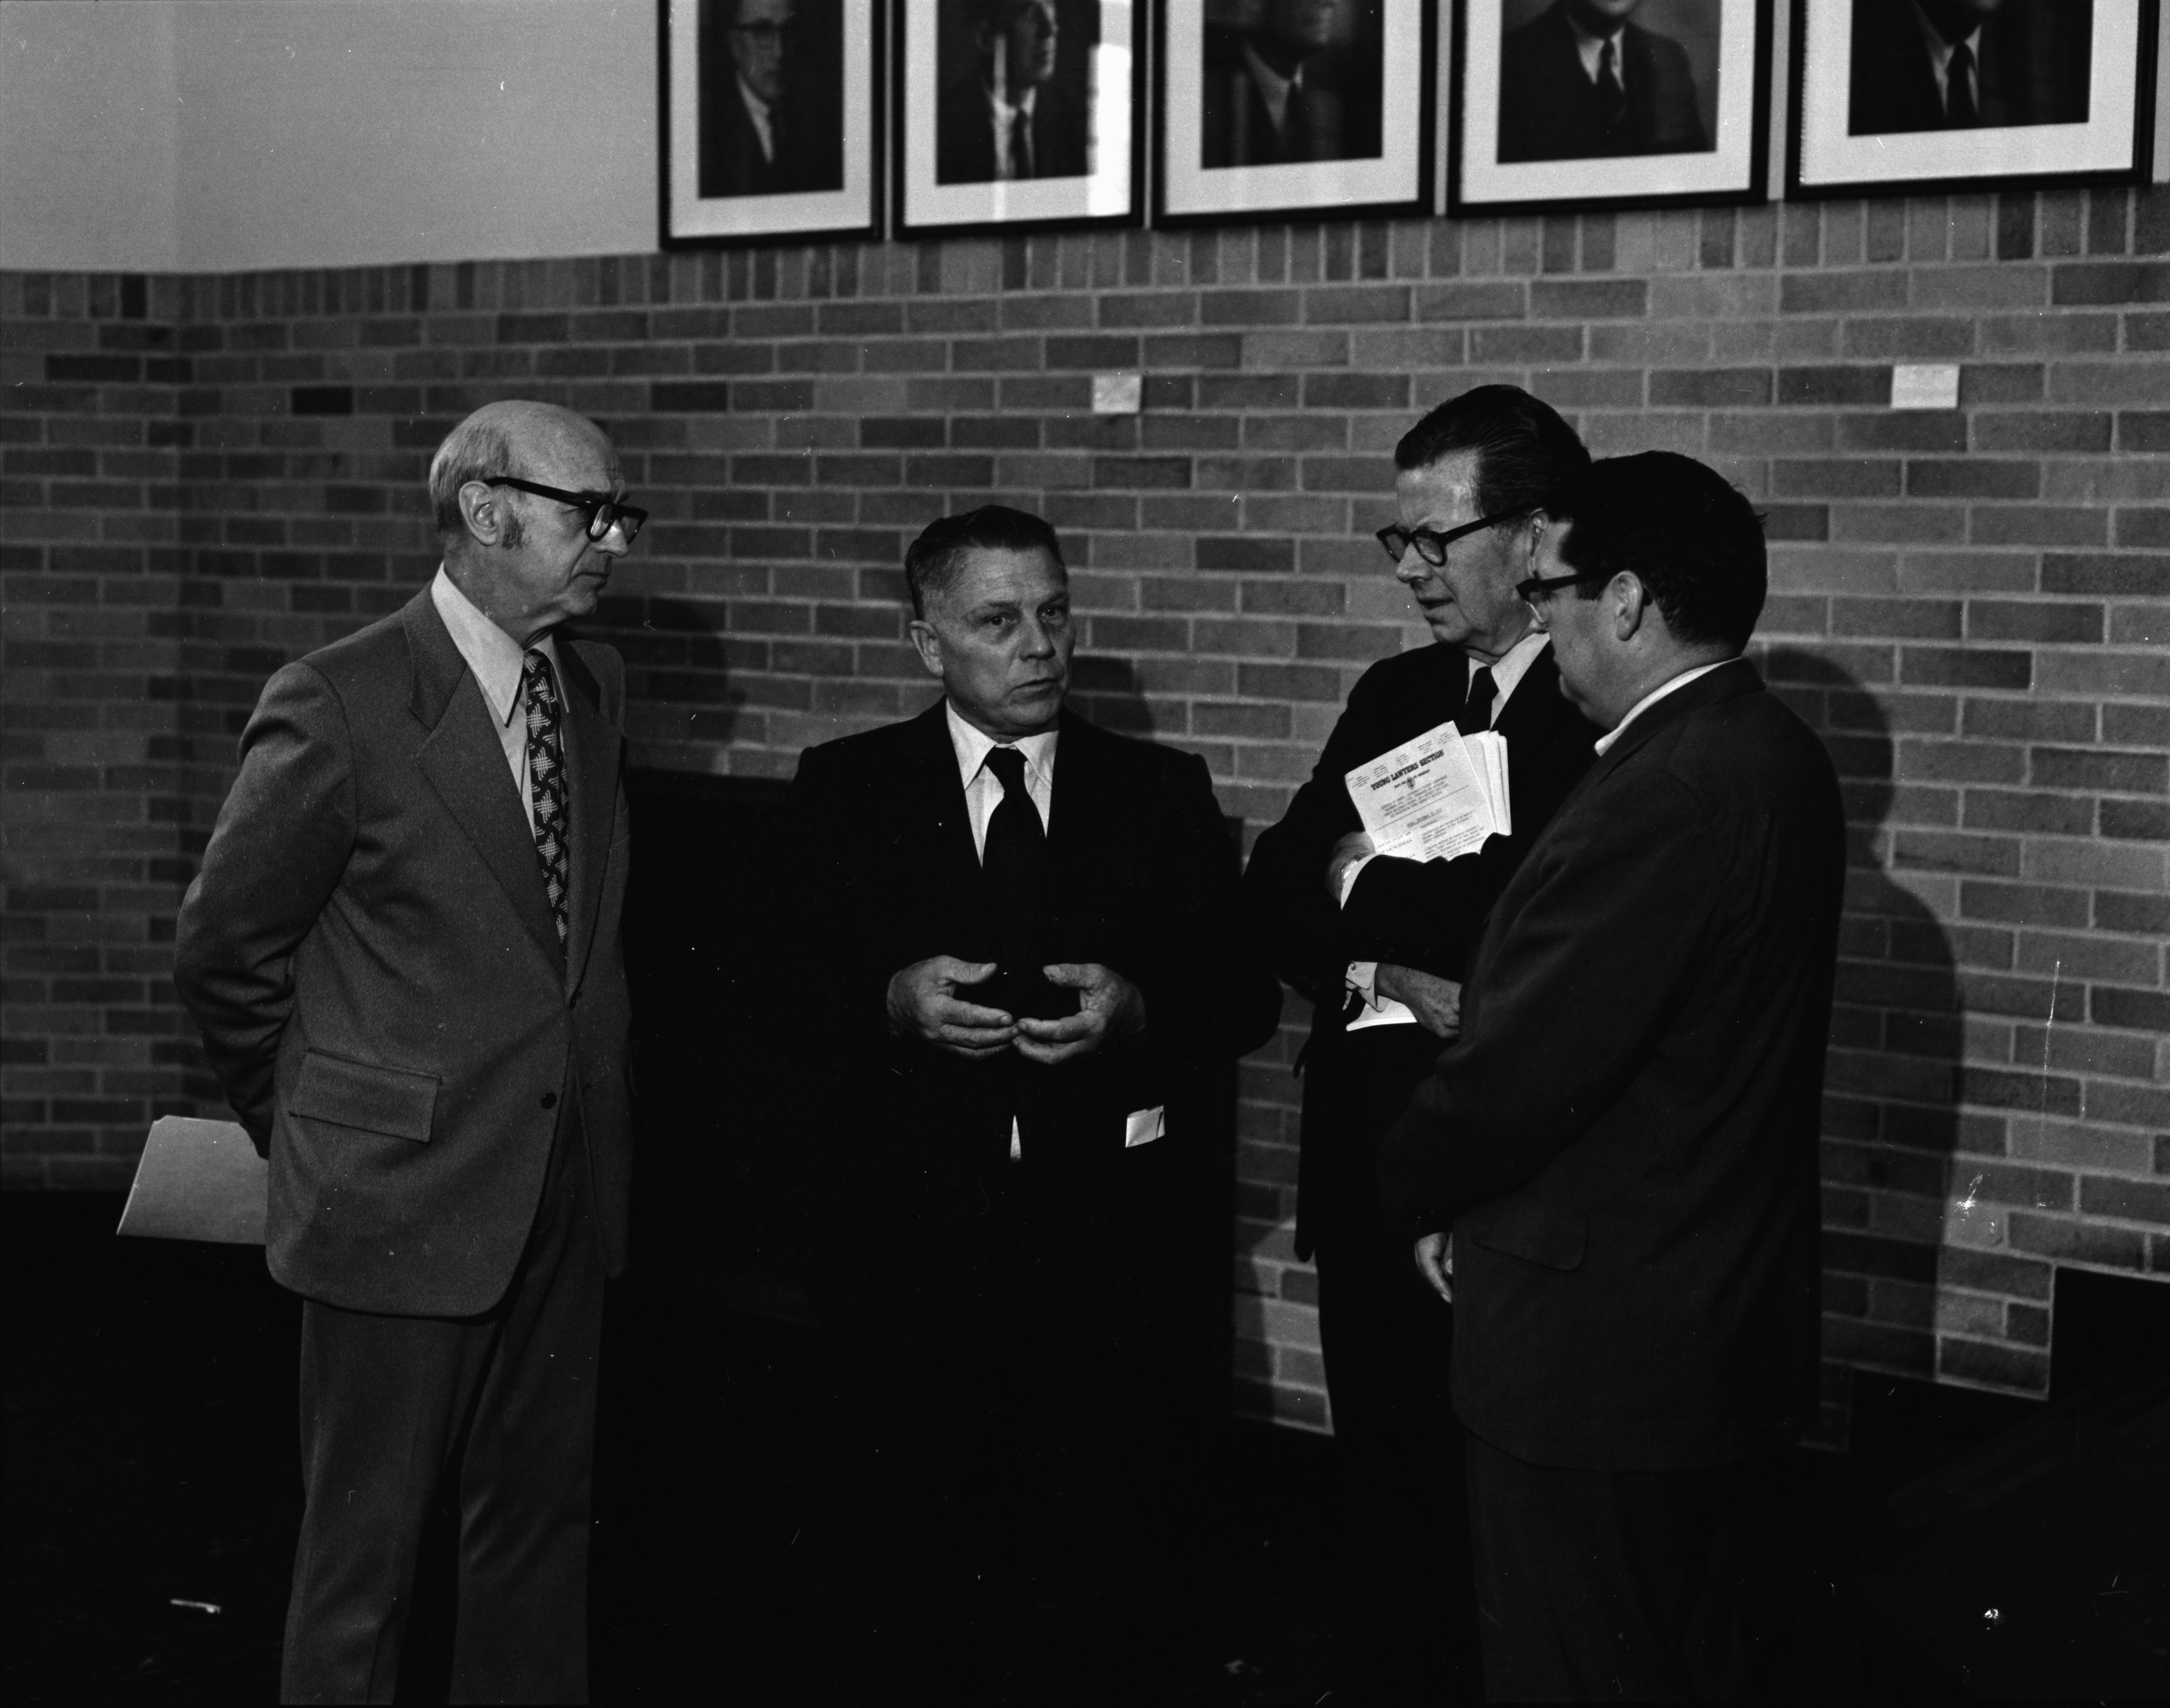 Jimmy Hoffa and others at the University of Michigan's Prisoner's Rights Conference, September 1972 image